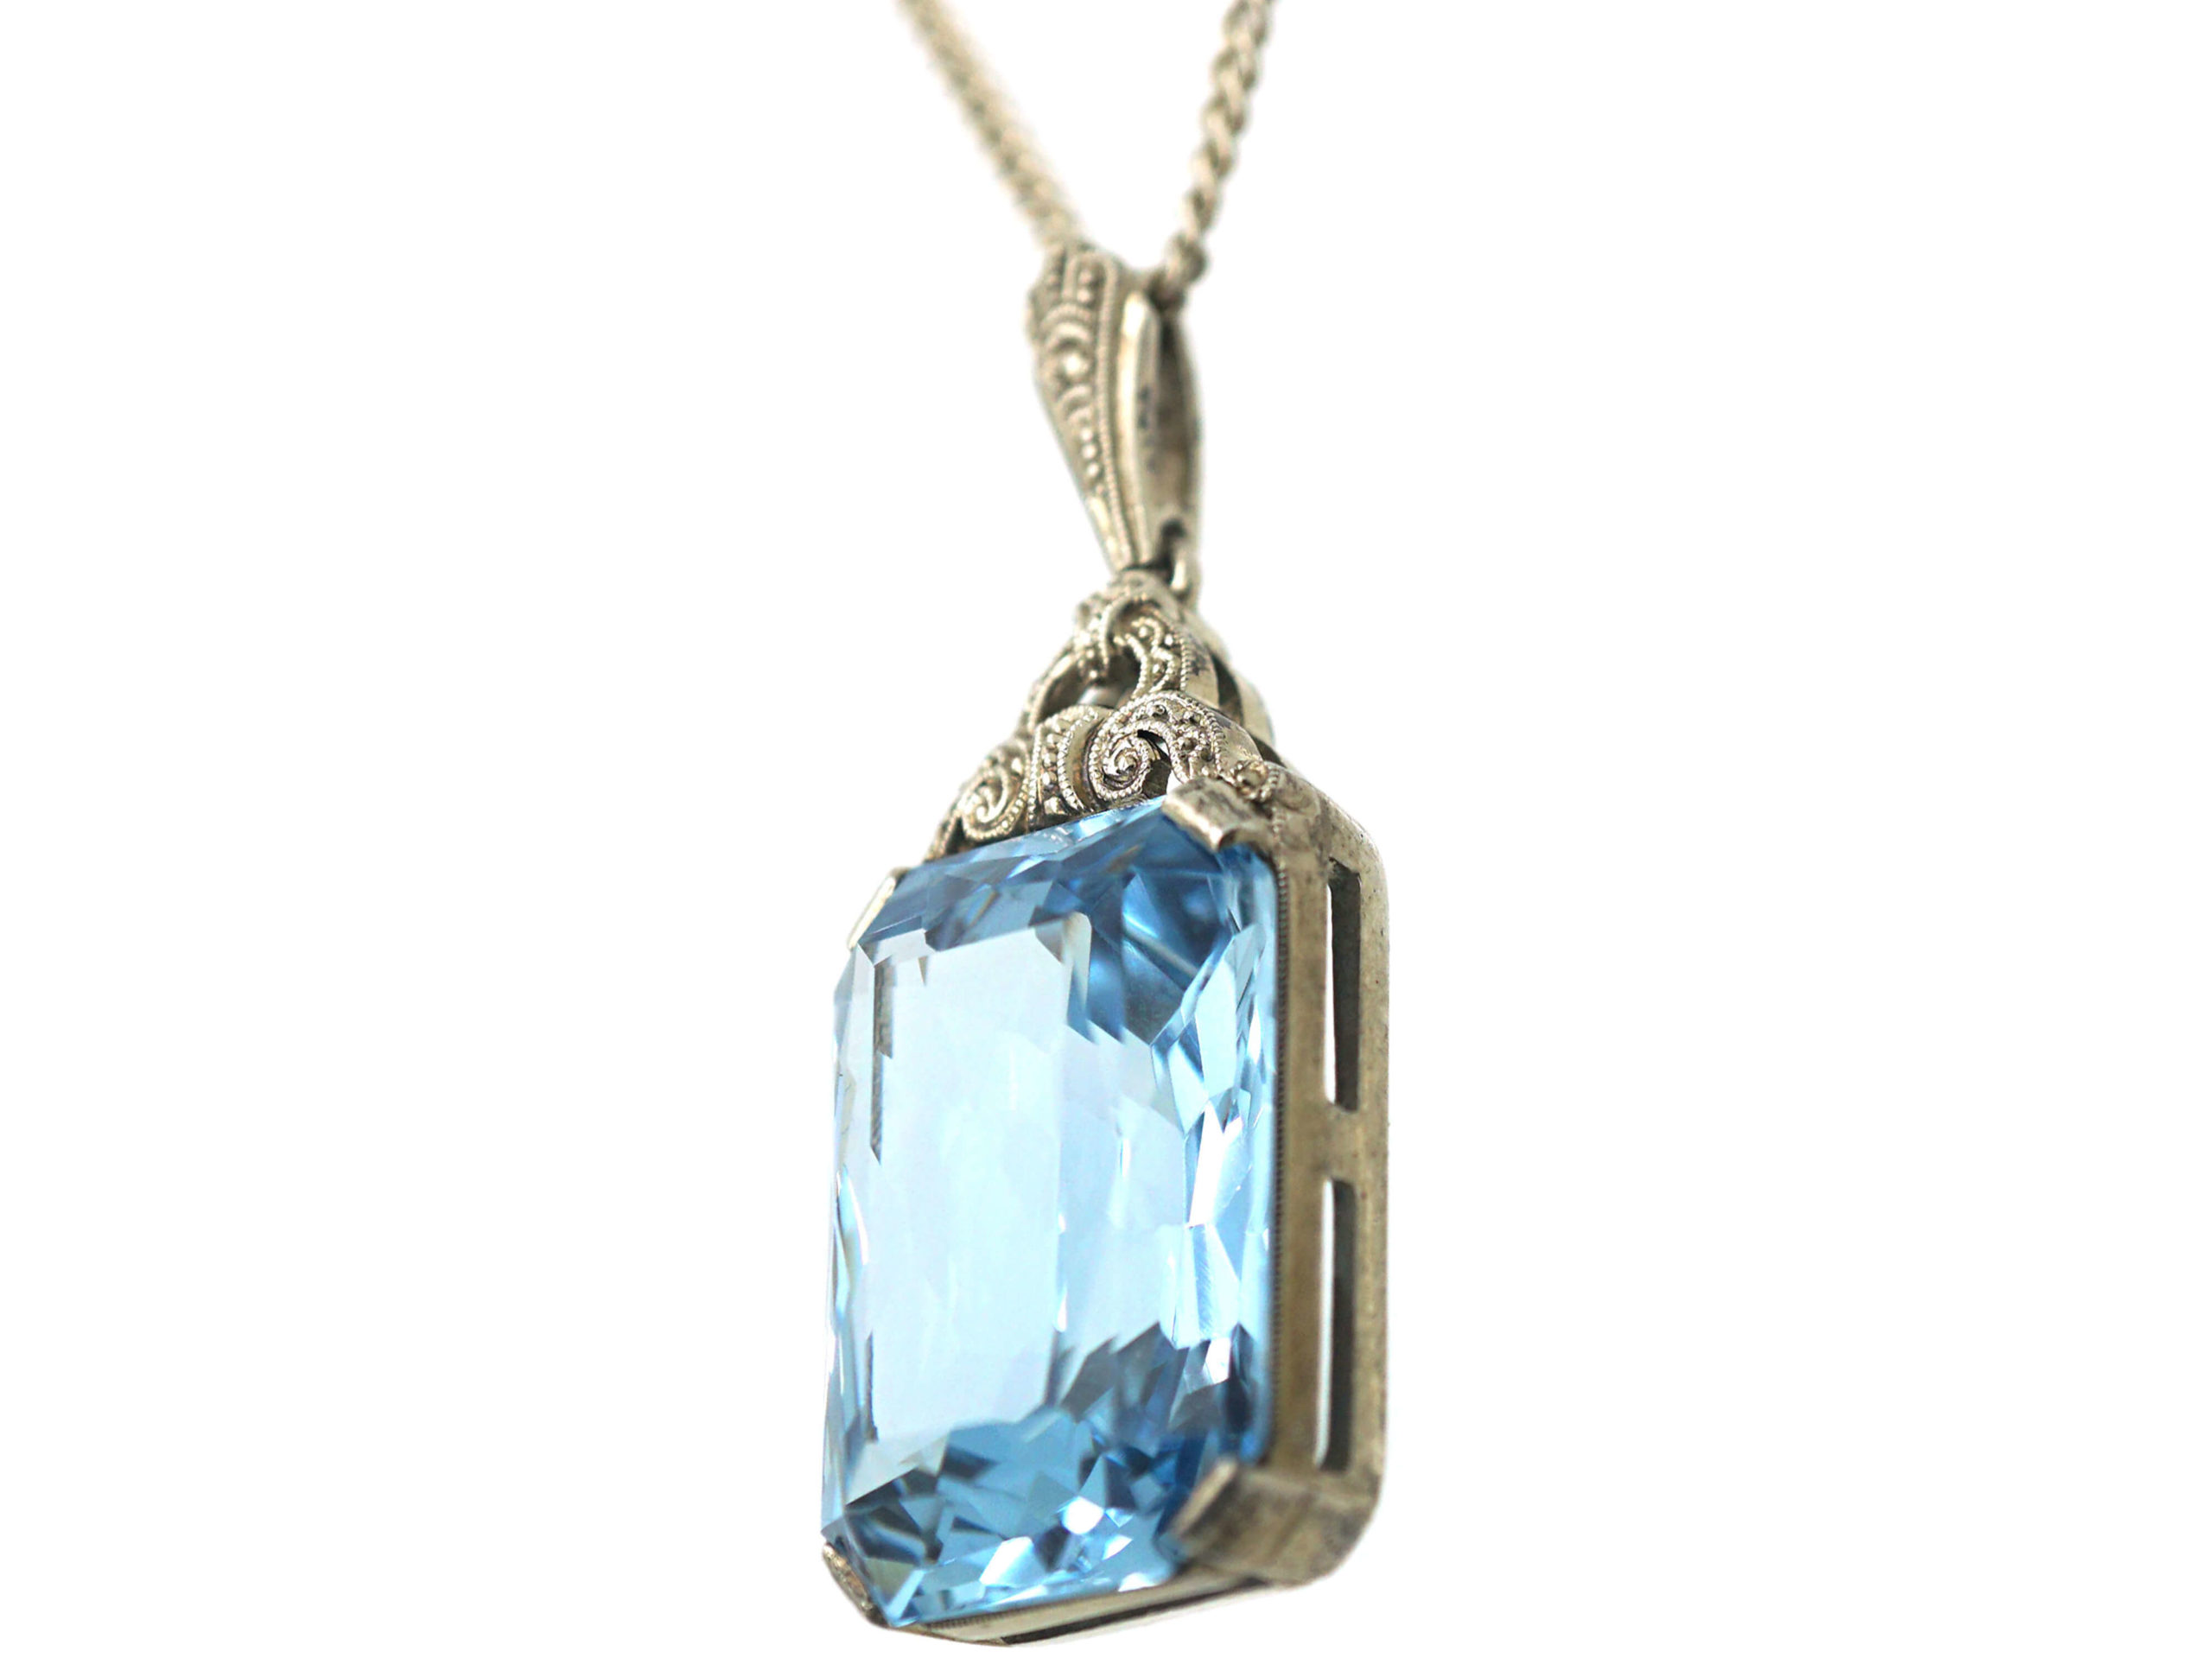 Art Deco Silver & Synthetic Blue Spinel Pendant on a Silver Chain